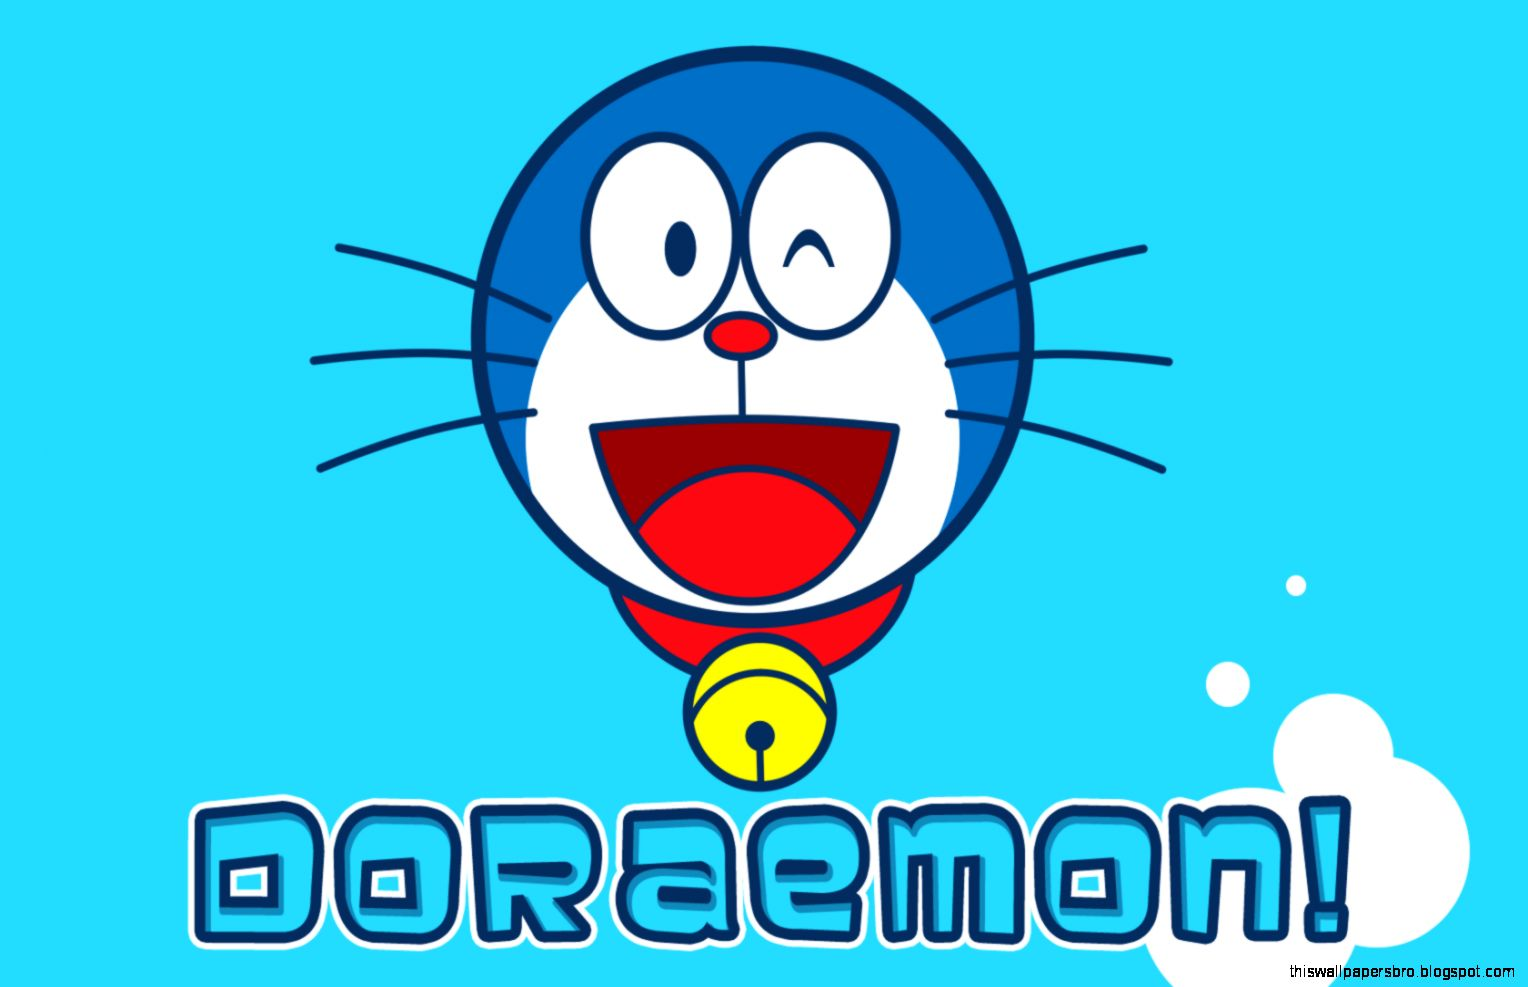 Doraemon Hd Wallpapers Iphone Android Linux Mac Windows Wallpapers